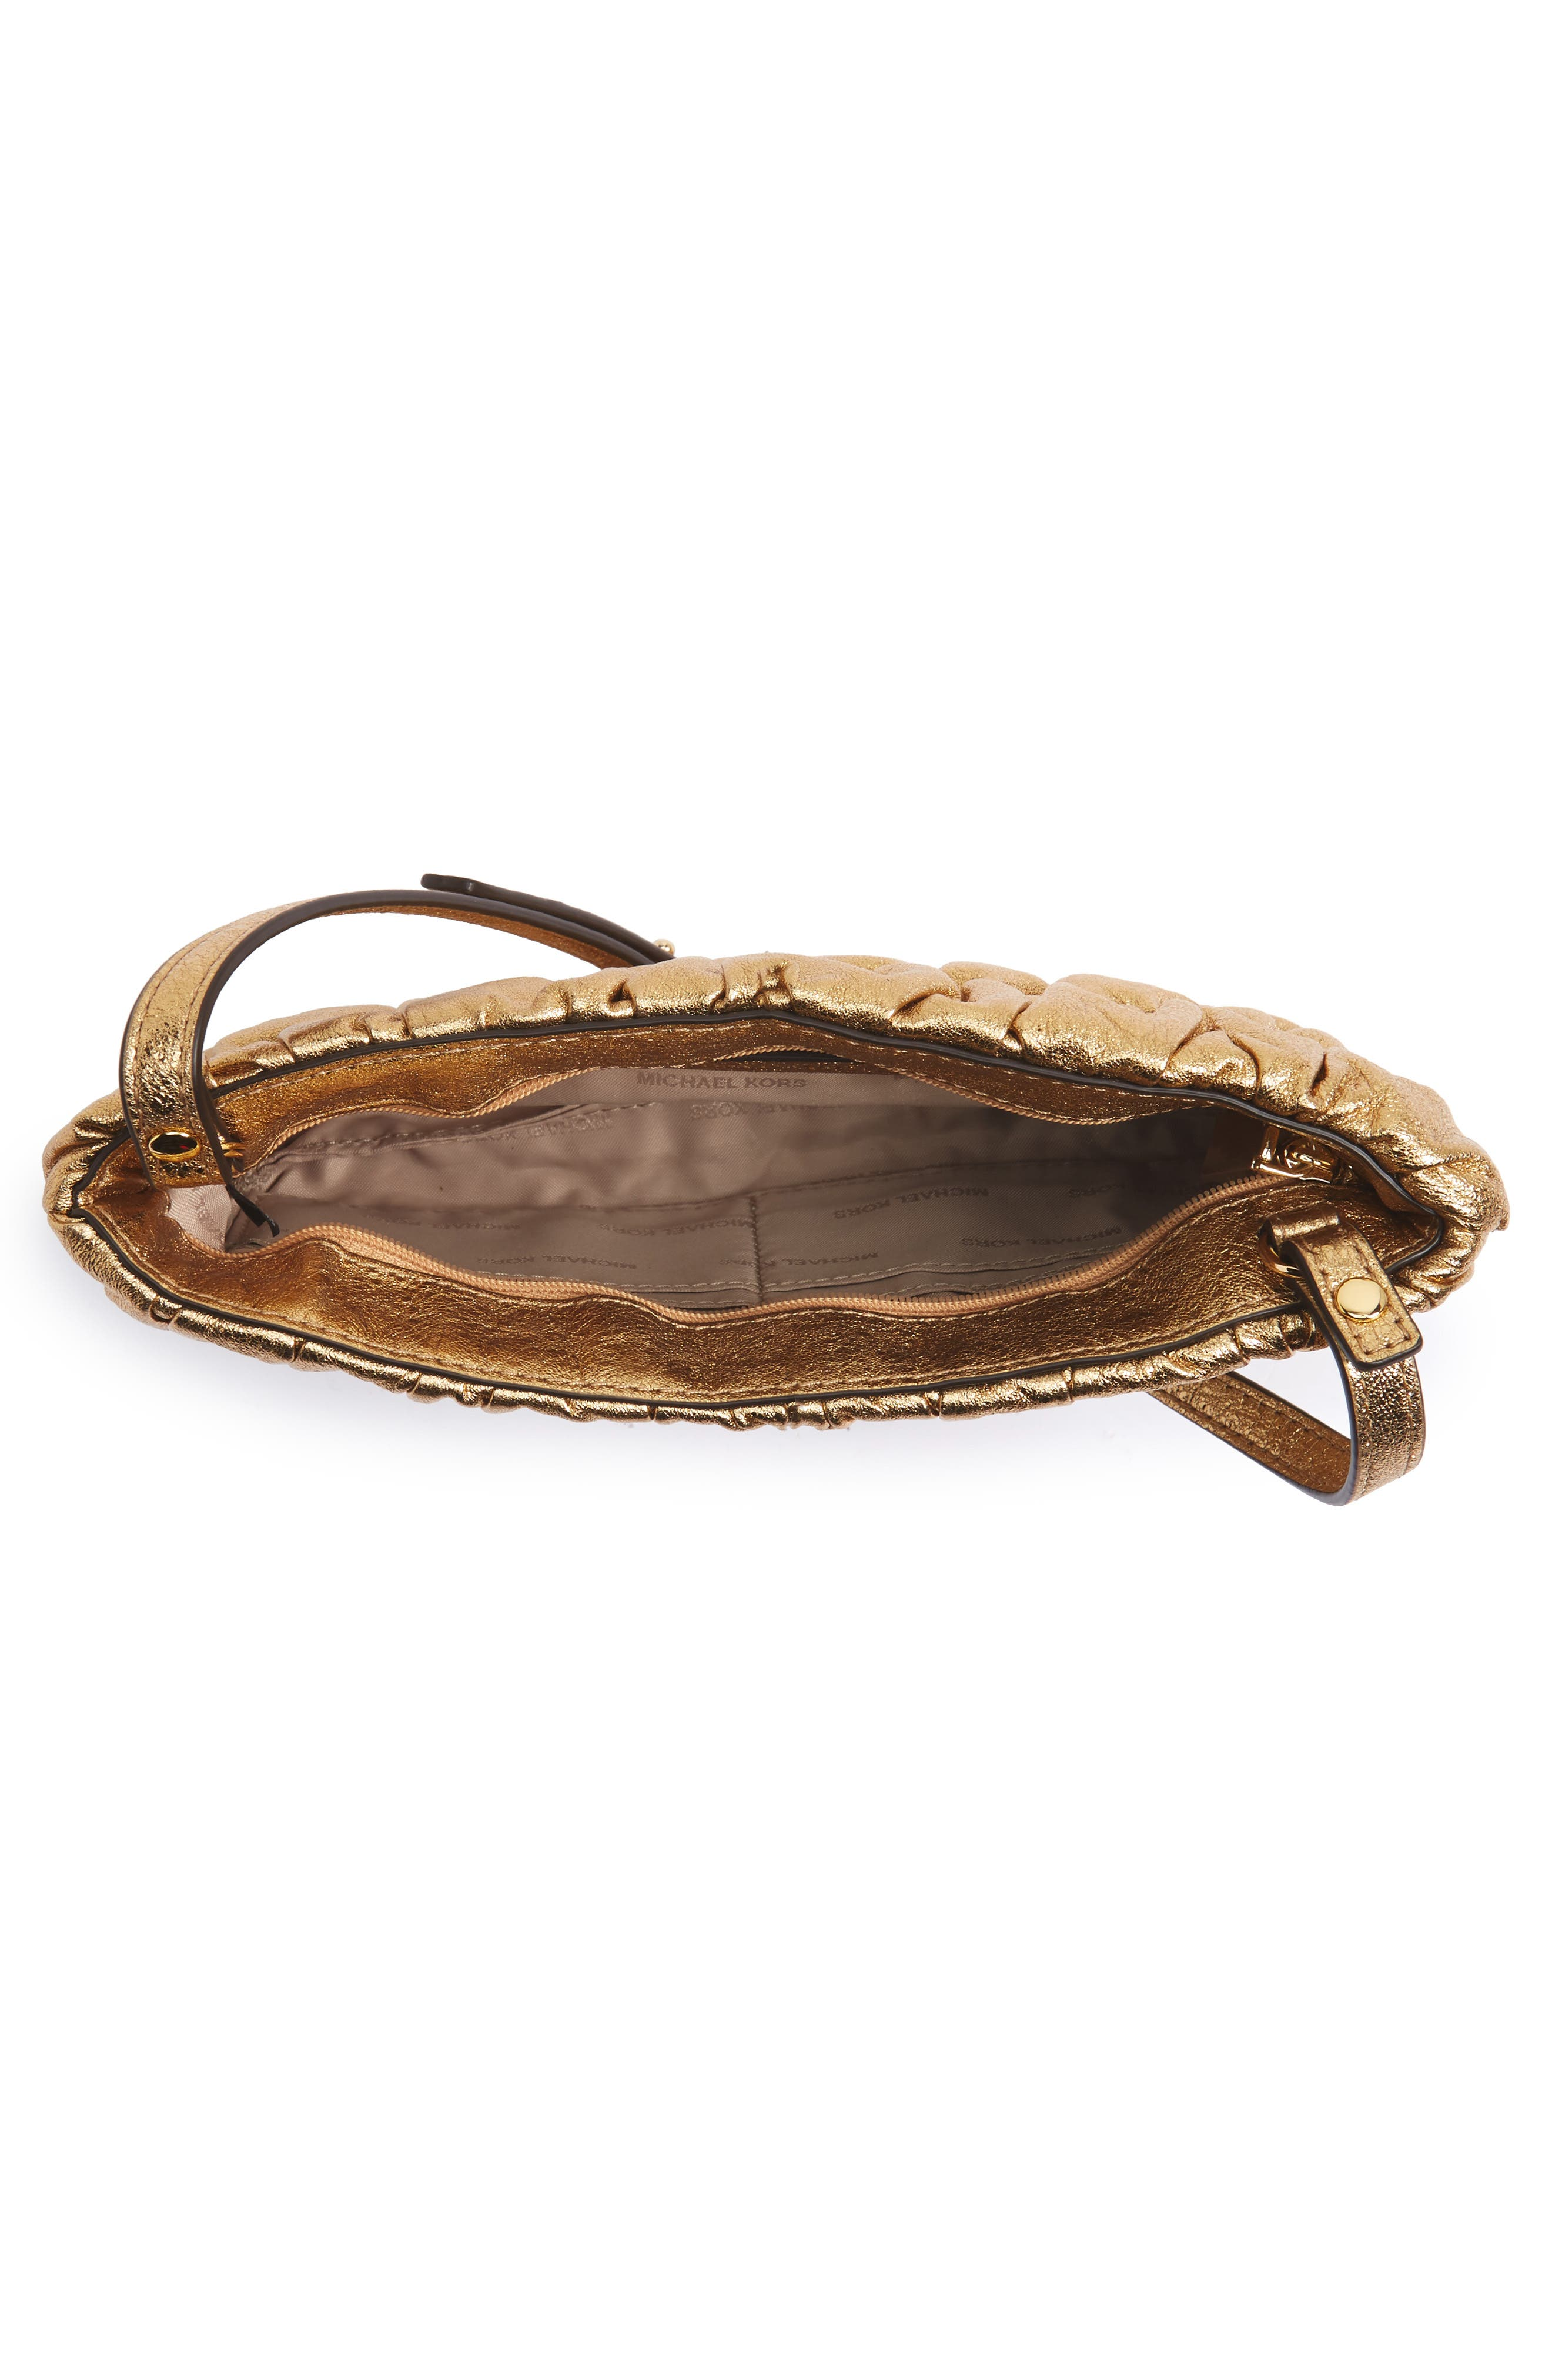 MICHAEL Michael Kors Webster Metallic Leather Clutch,                             Alternate thumbnail 8, color,